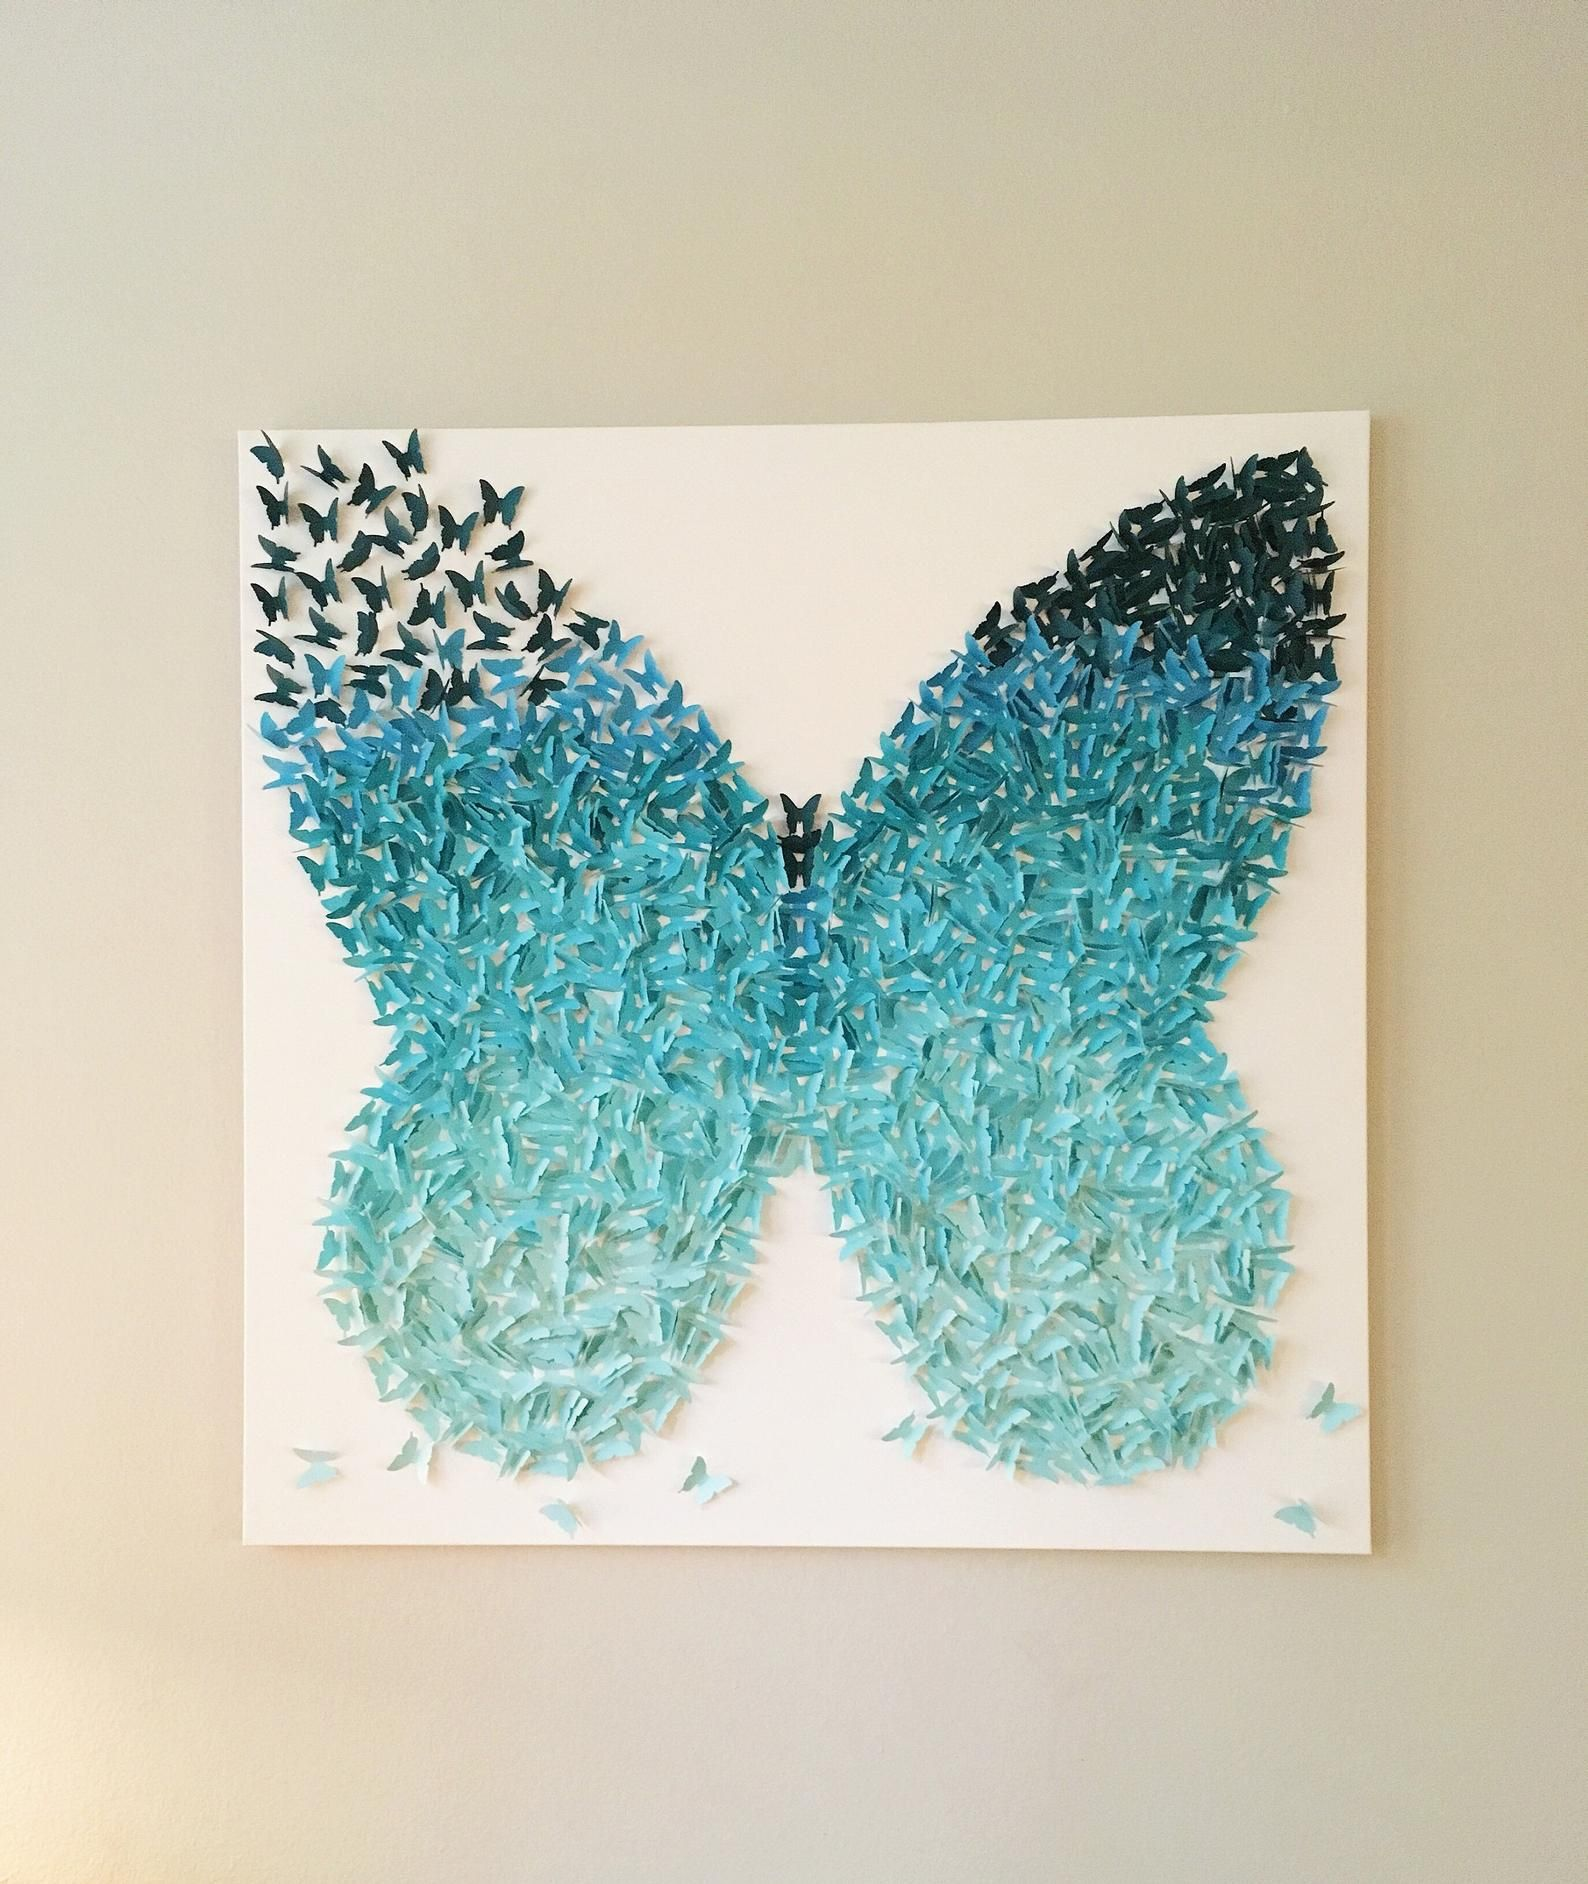 36x36 Aqua Turquoise Ombre 3d Wings Butterfly Etsy Butterfly Canvas Butterfly Art Aqua Turquoise